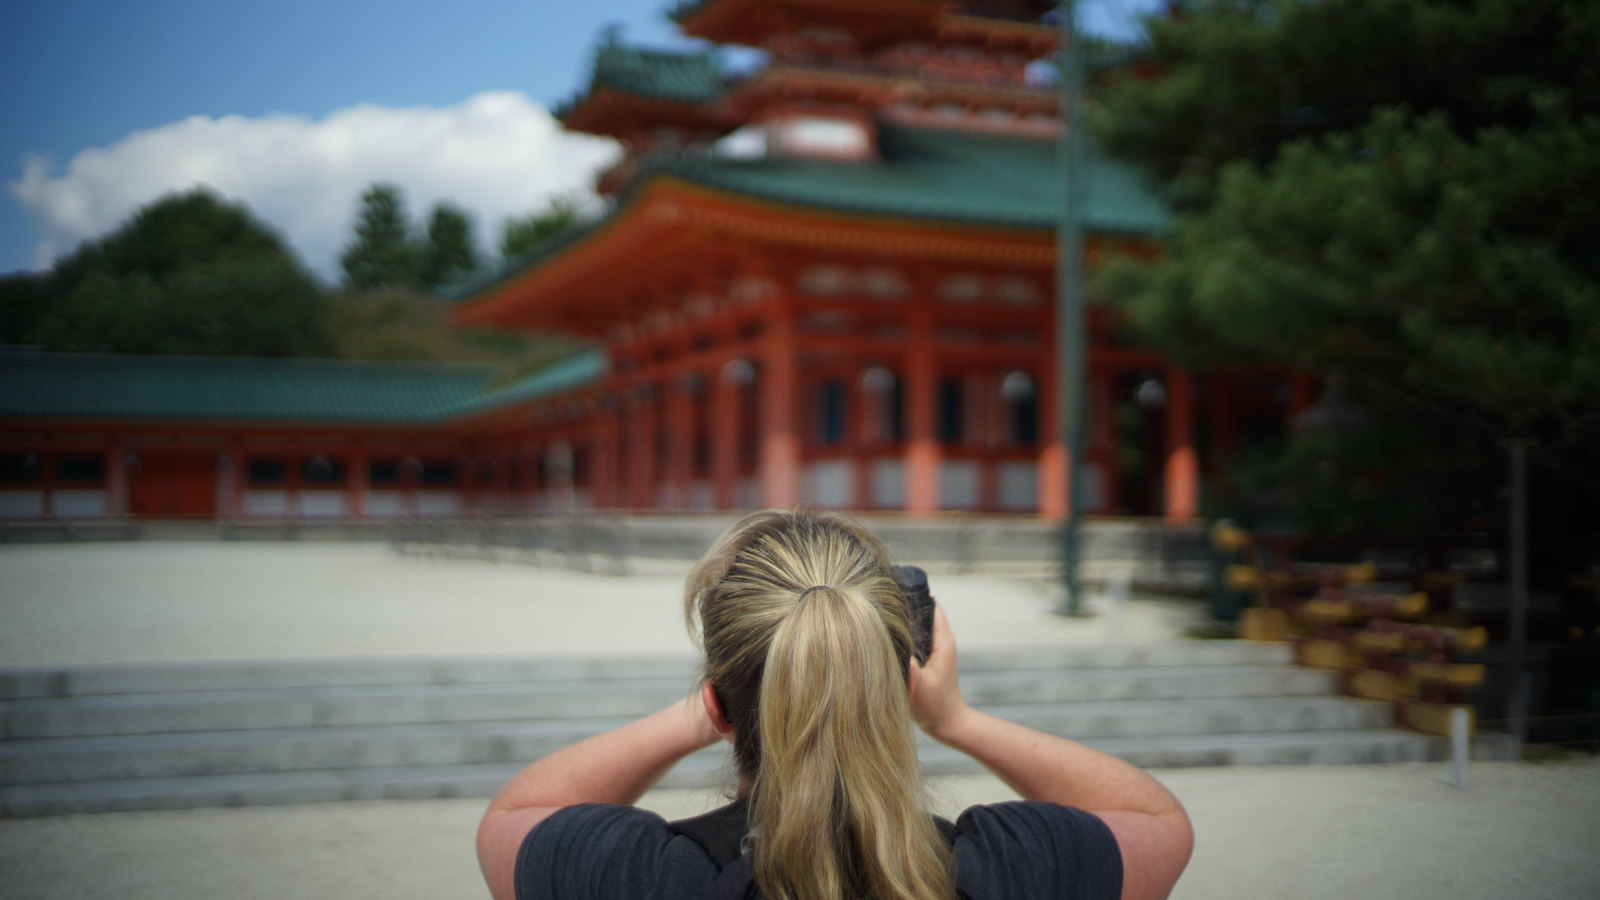 Ambré at Heian Shrine. #foto #japan15 #SonyA7 #Voigtlander40mm #Kyoto #holga